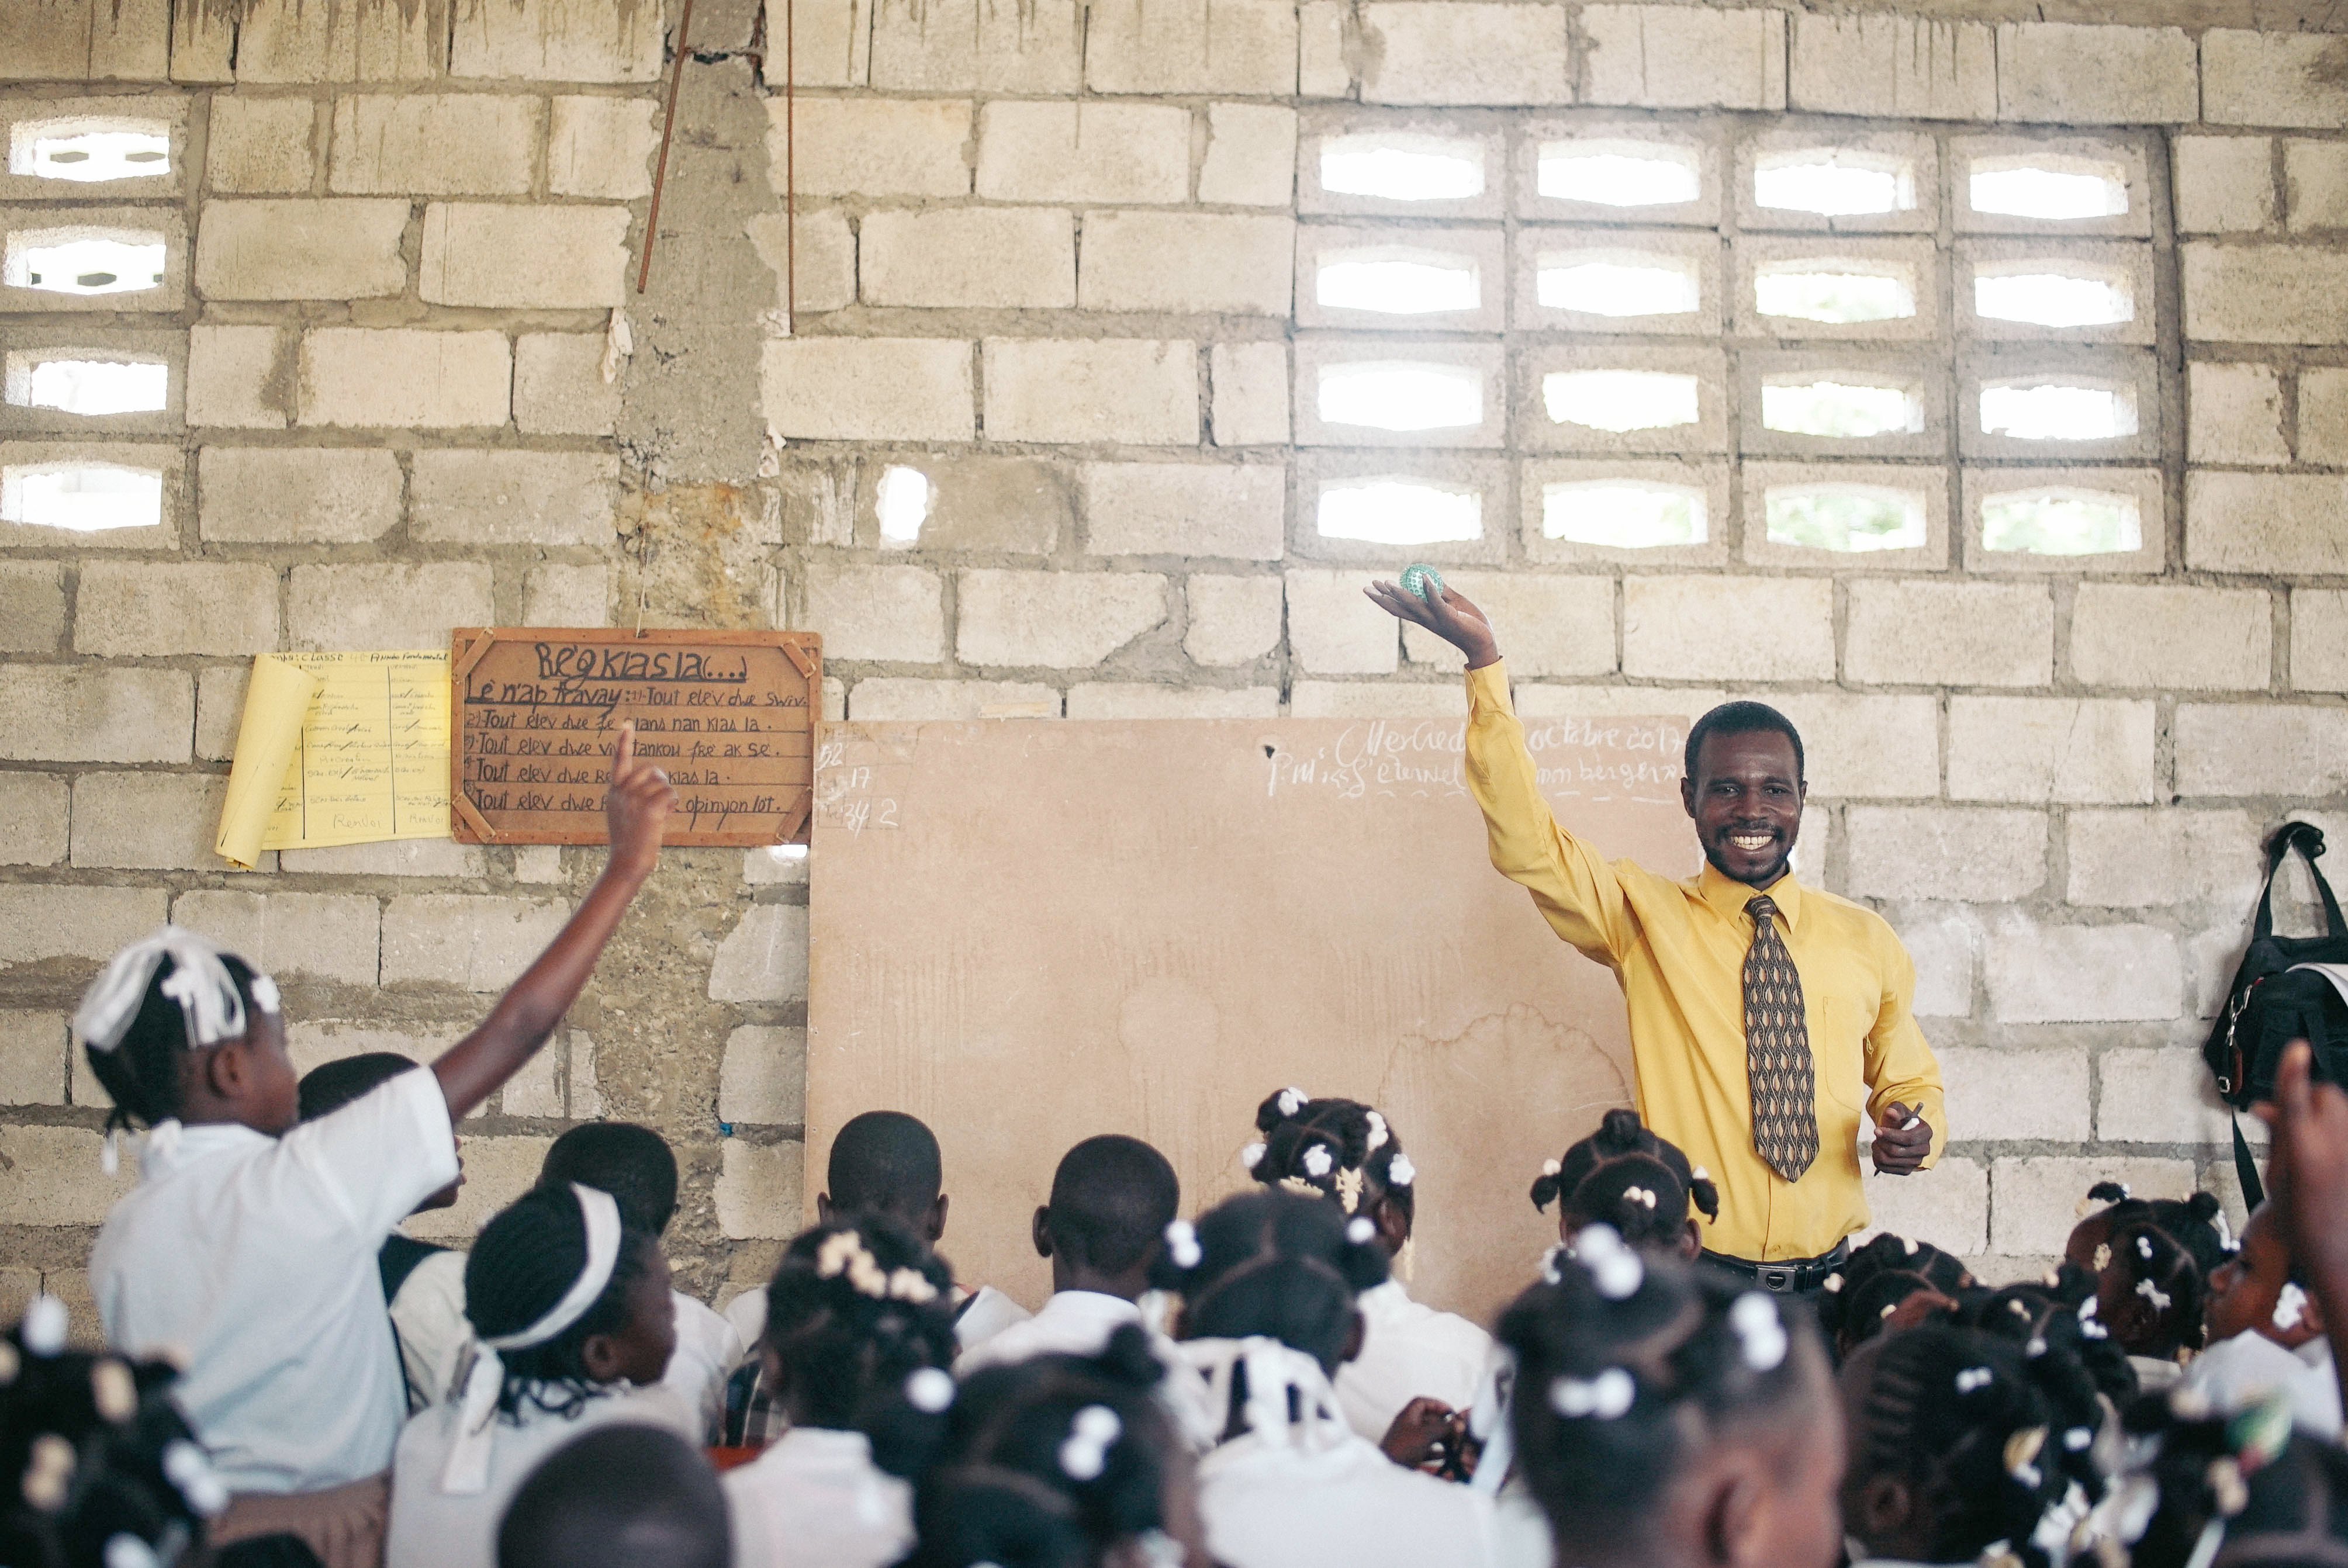 A student raises her hand in a classroom in Haiti.